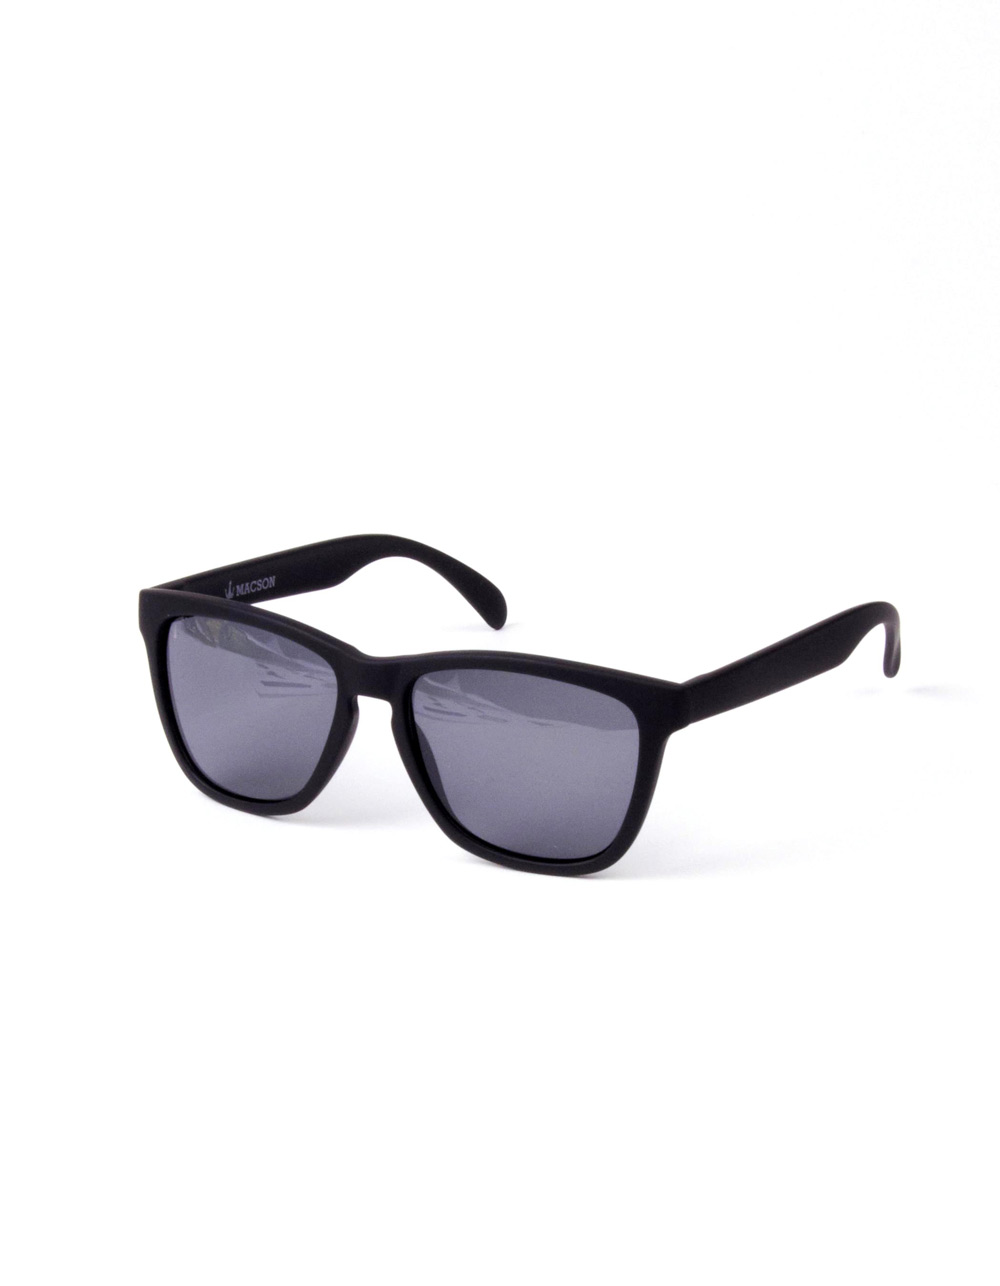 Sunglasses retro black